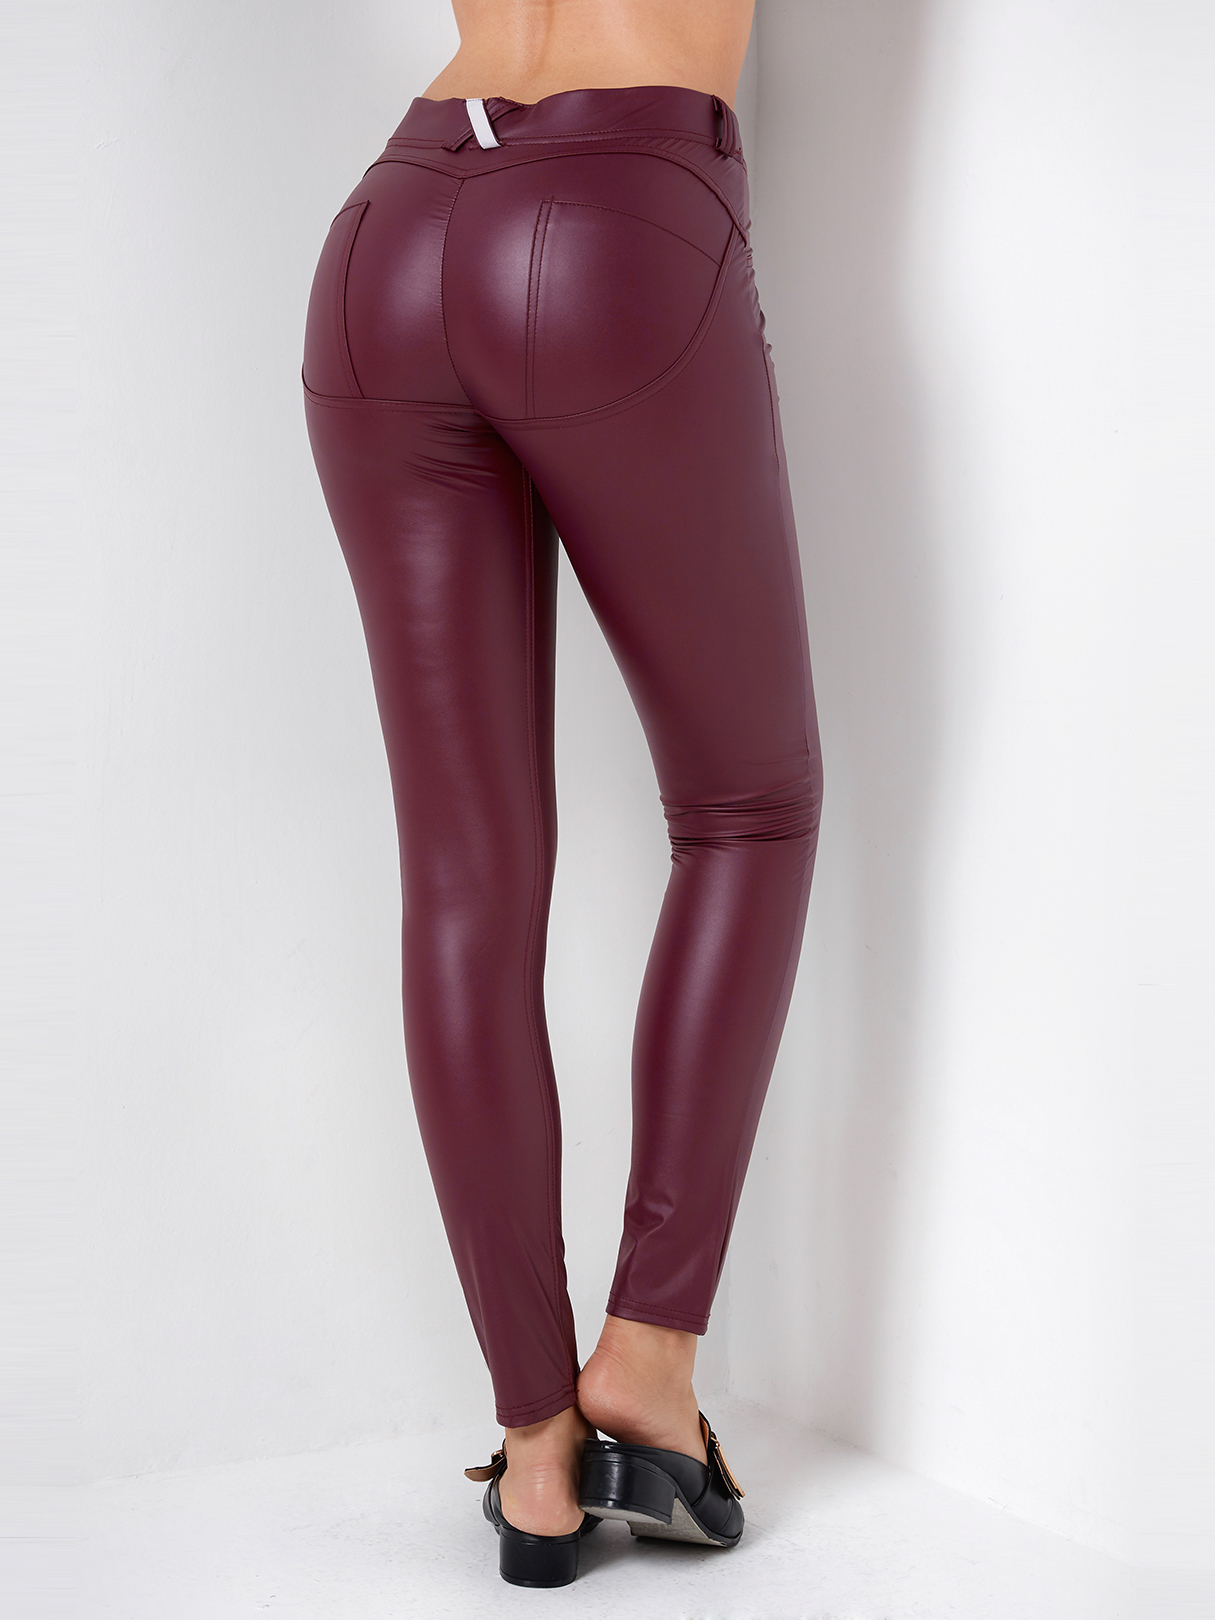 Leggings en cuir moulants à la mode bordeaux BAS Bourgogne Leggings xs|s|m|l Yoins